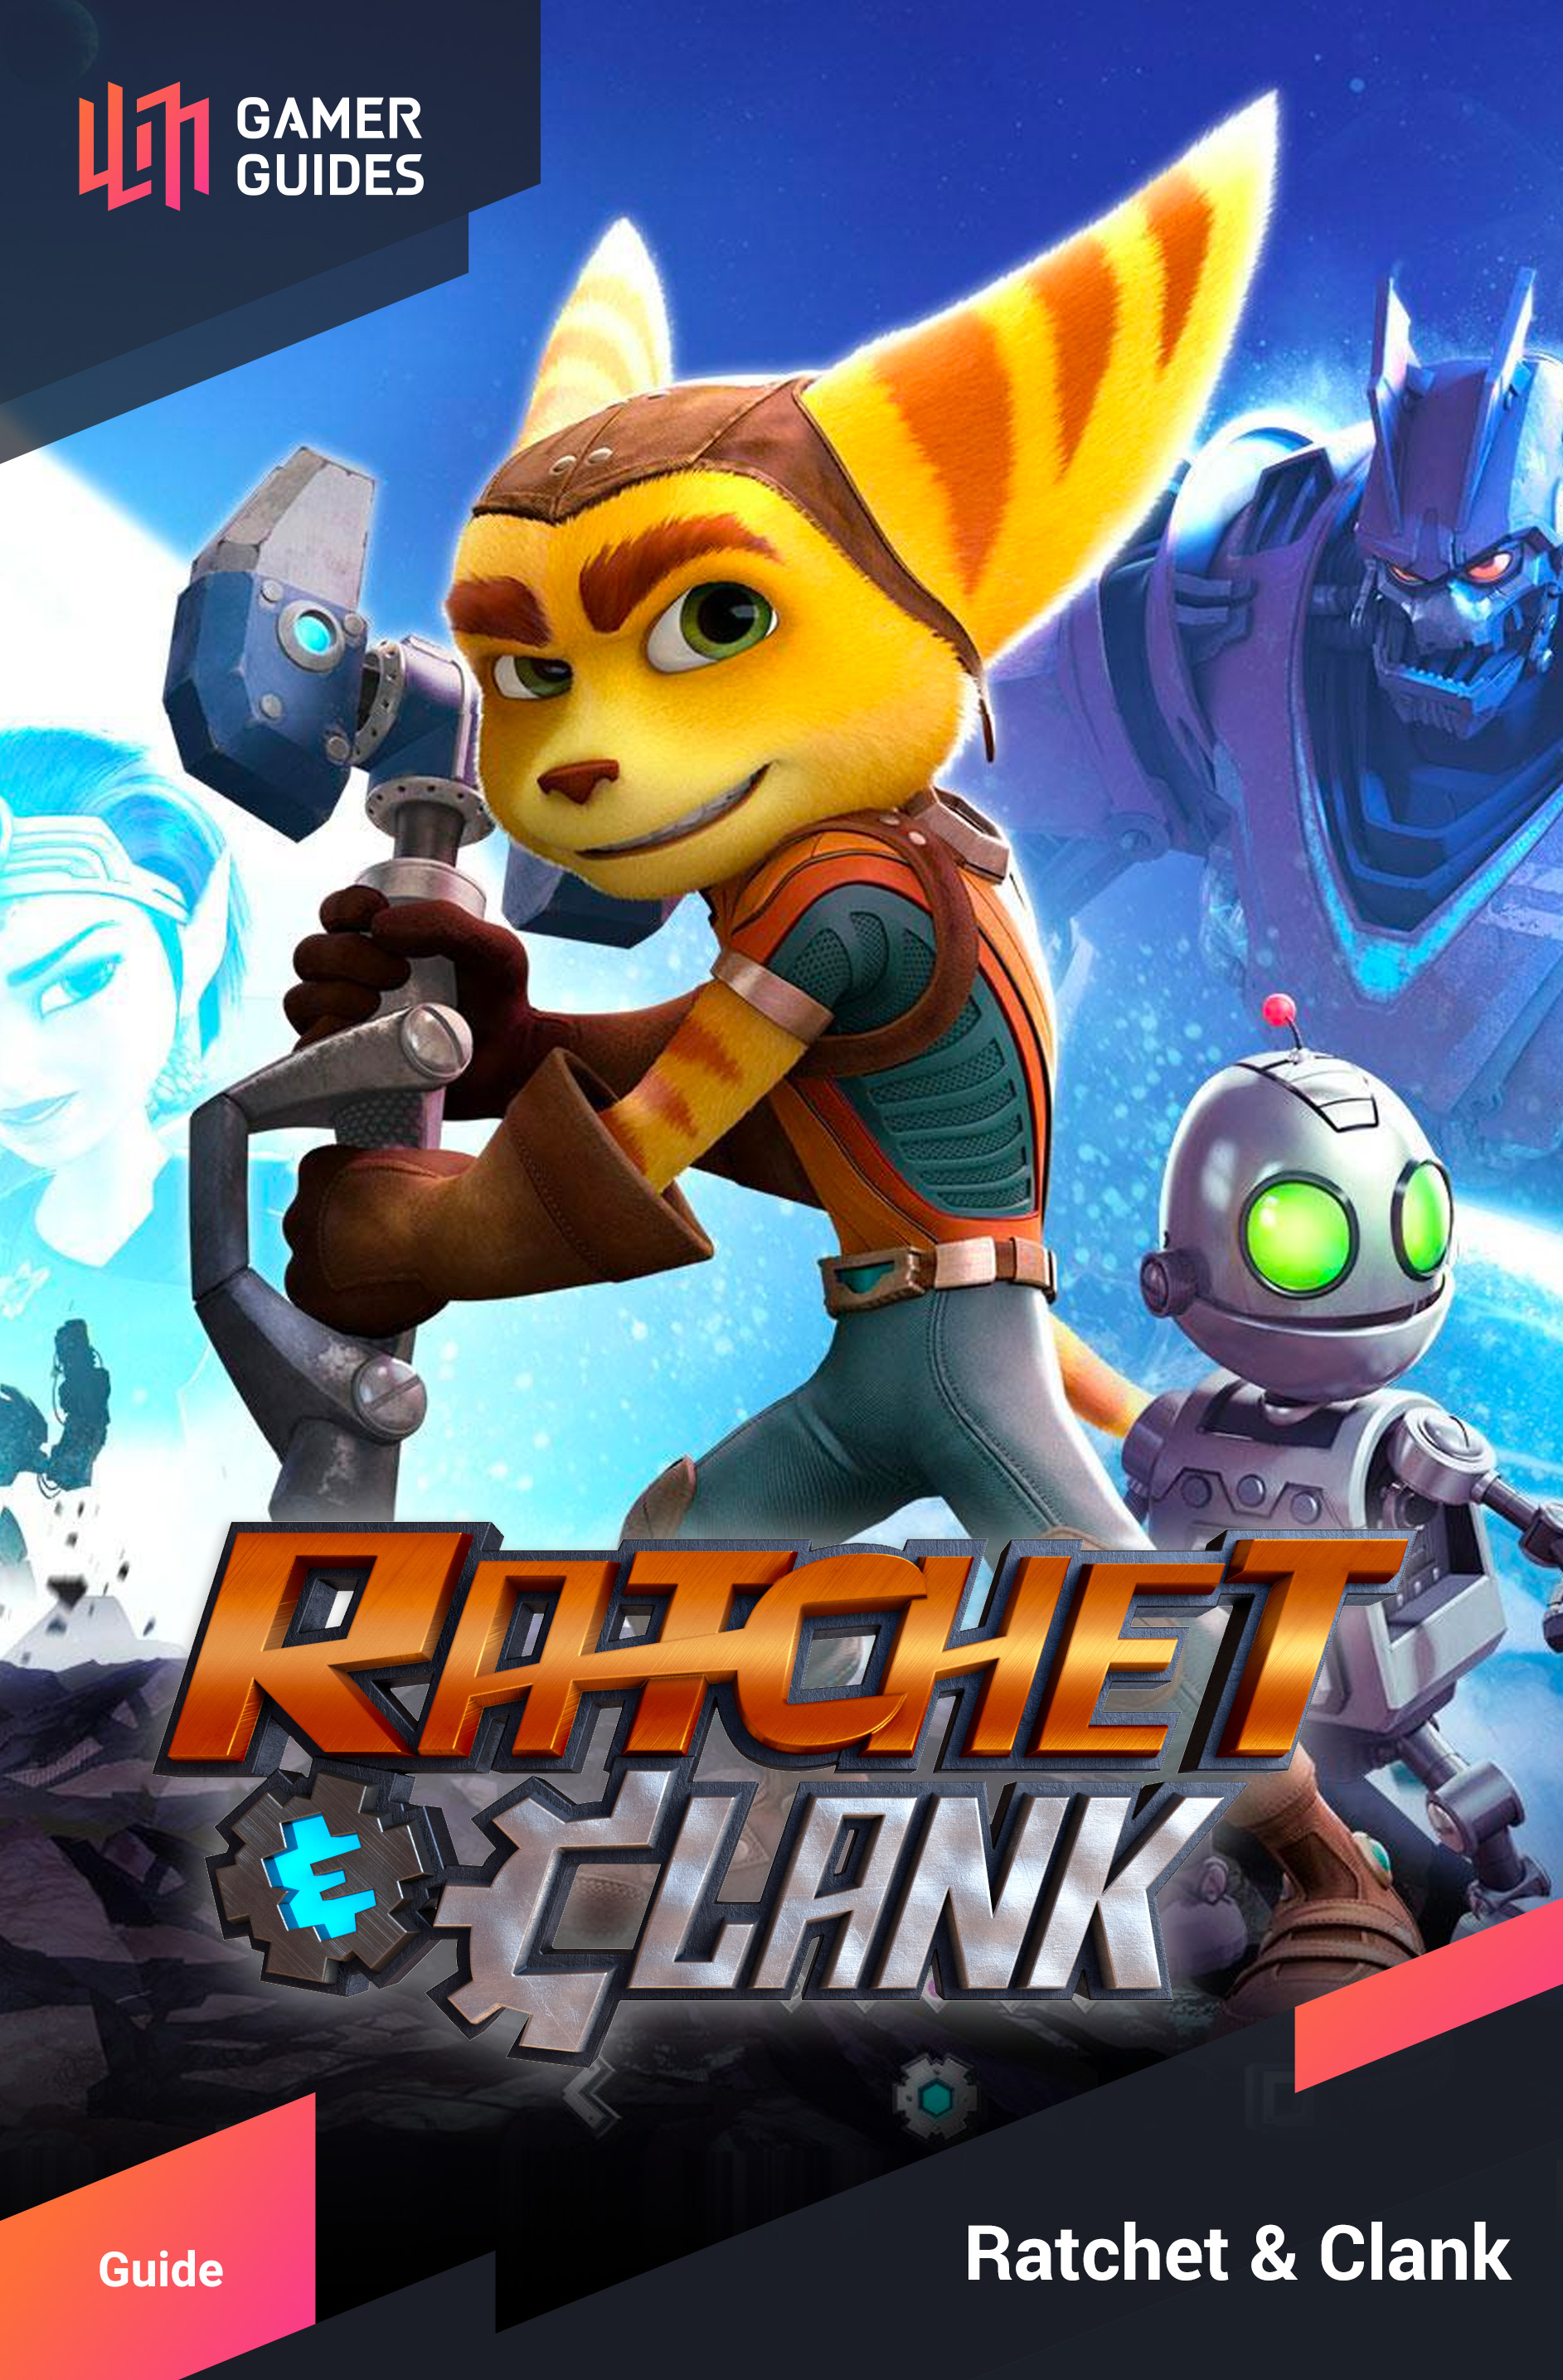 Challenge Mode Ratchet Clank Gamer Guides